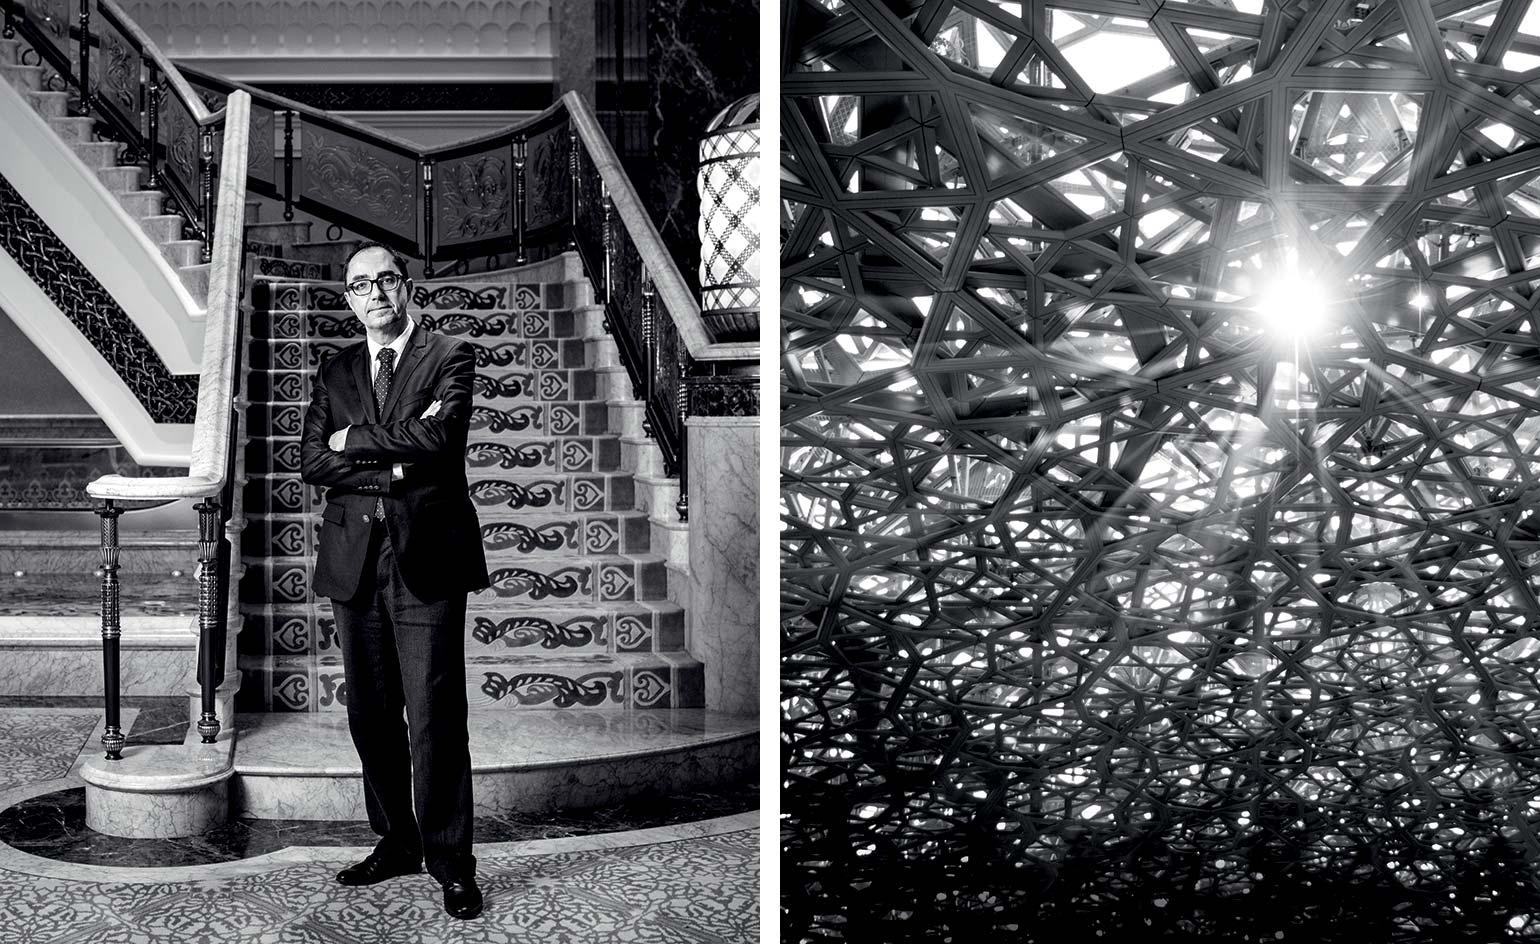 The Louvre Abu Dhabi will open this year and curator Jean-Luc